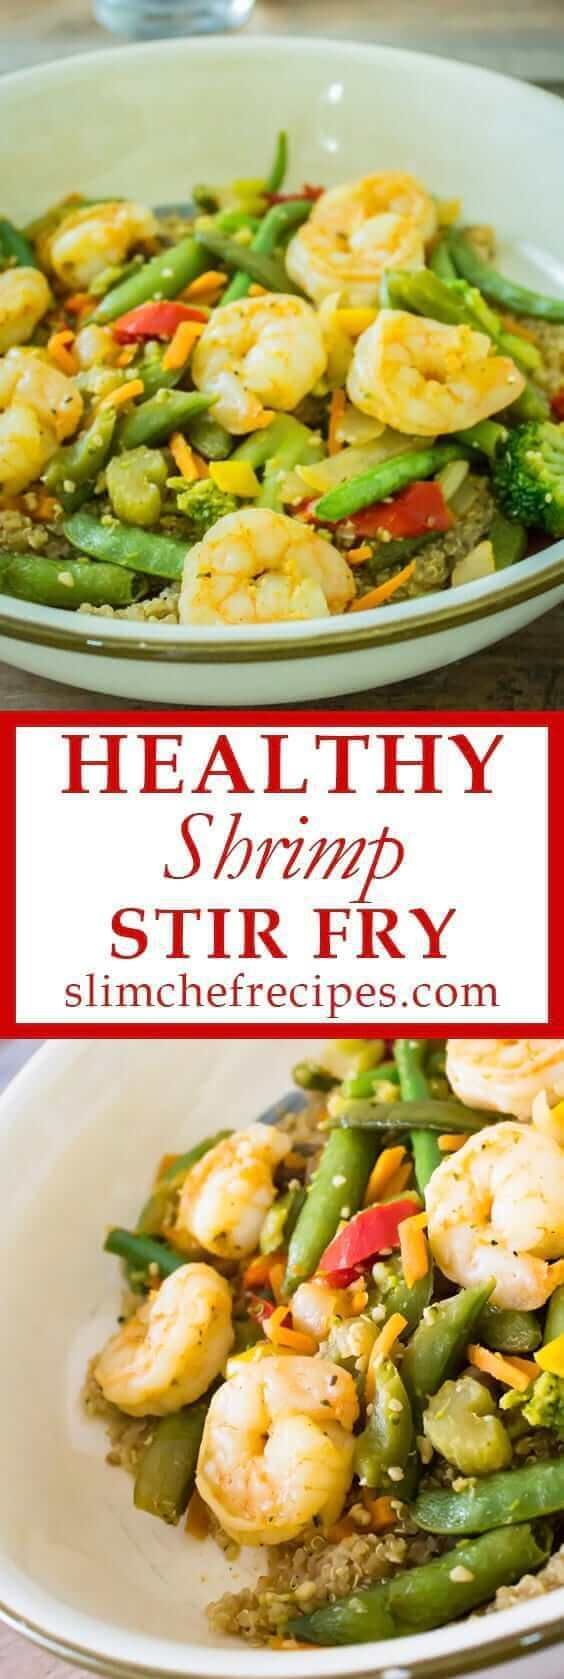 Shrimp stir fry – A simple, healthy and quick dinner based on Asian cuisine. We show you how to make a skinny low carb meal using every day vegetable ingredients like quinoa, peppers and no noodles. #shrimp #stir #fry